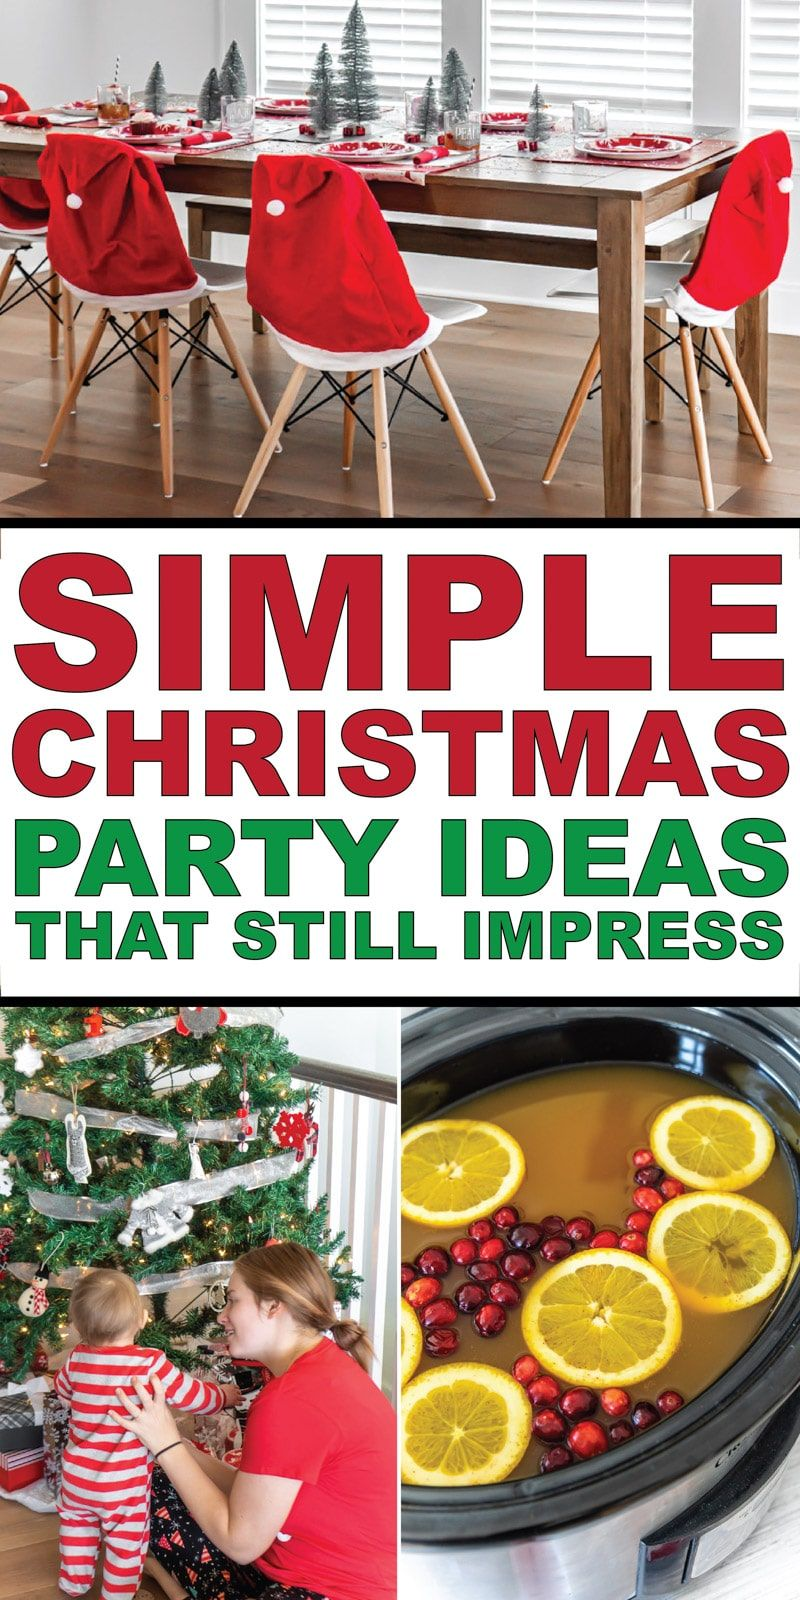 Easy Christmas Party Ideas to Amp Up Your Festivities